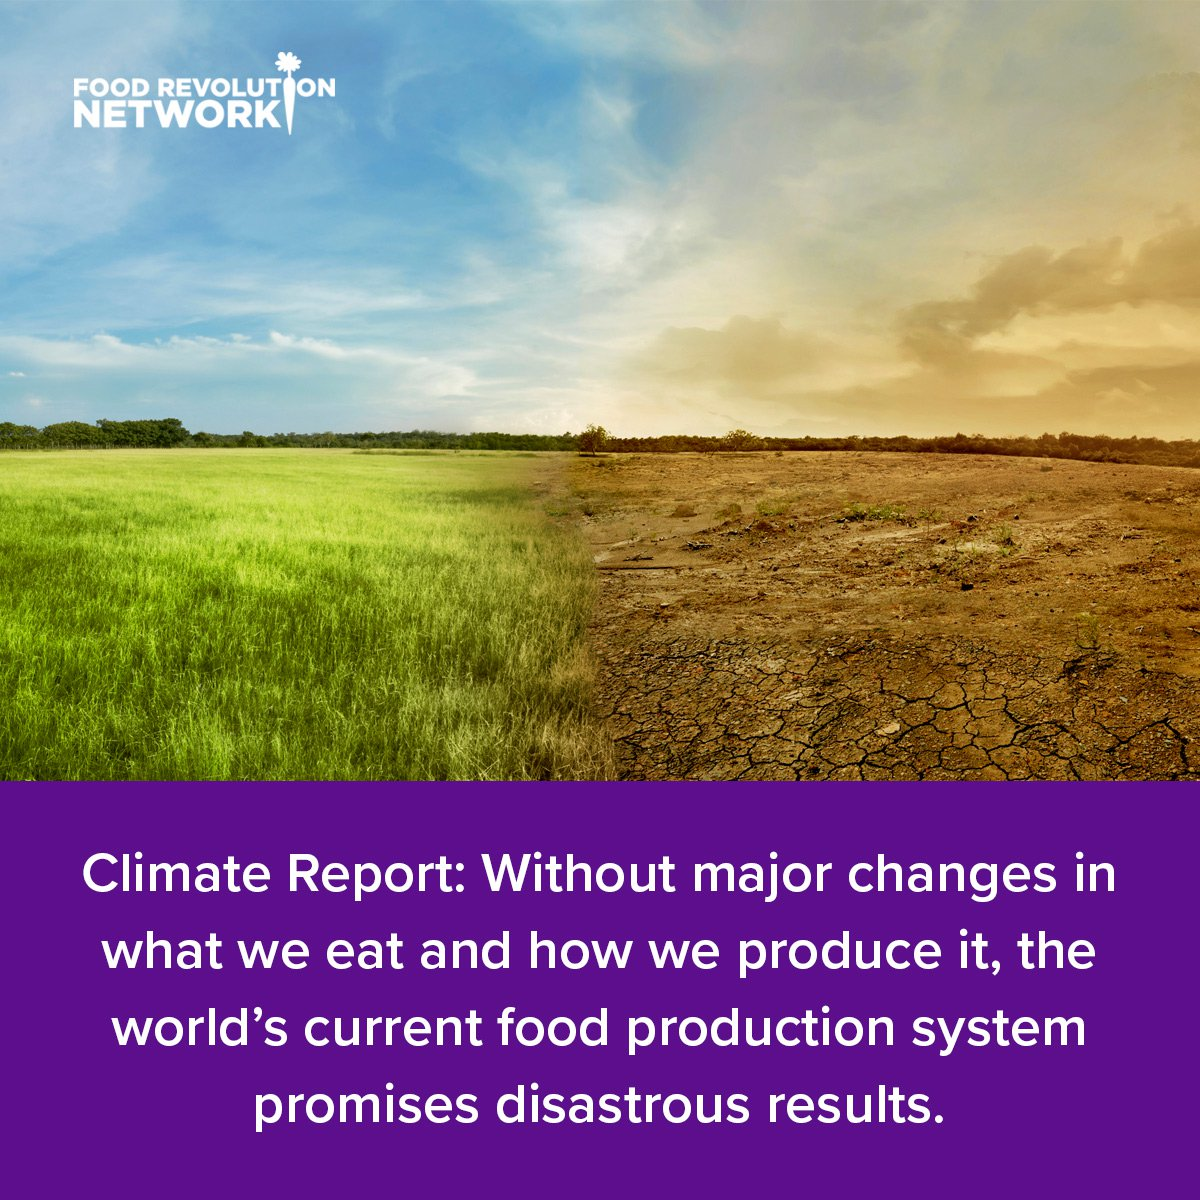 Climate Report: Without major changes in what we eat and how we produce it, the world's current food production system promises disastrous results.